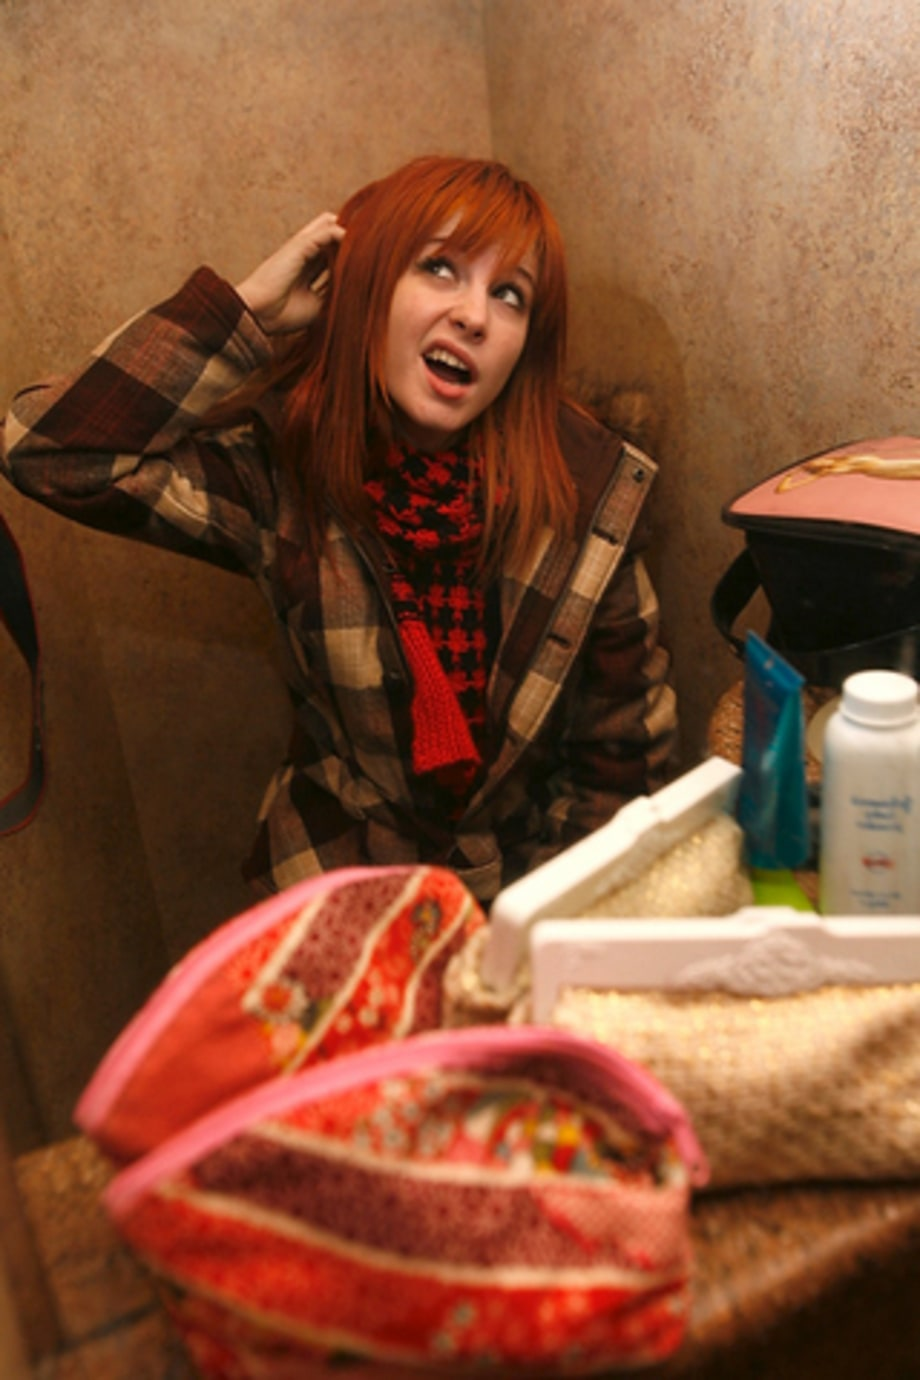 Paramore Bus Tour: Hayley Make-Up Bags